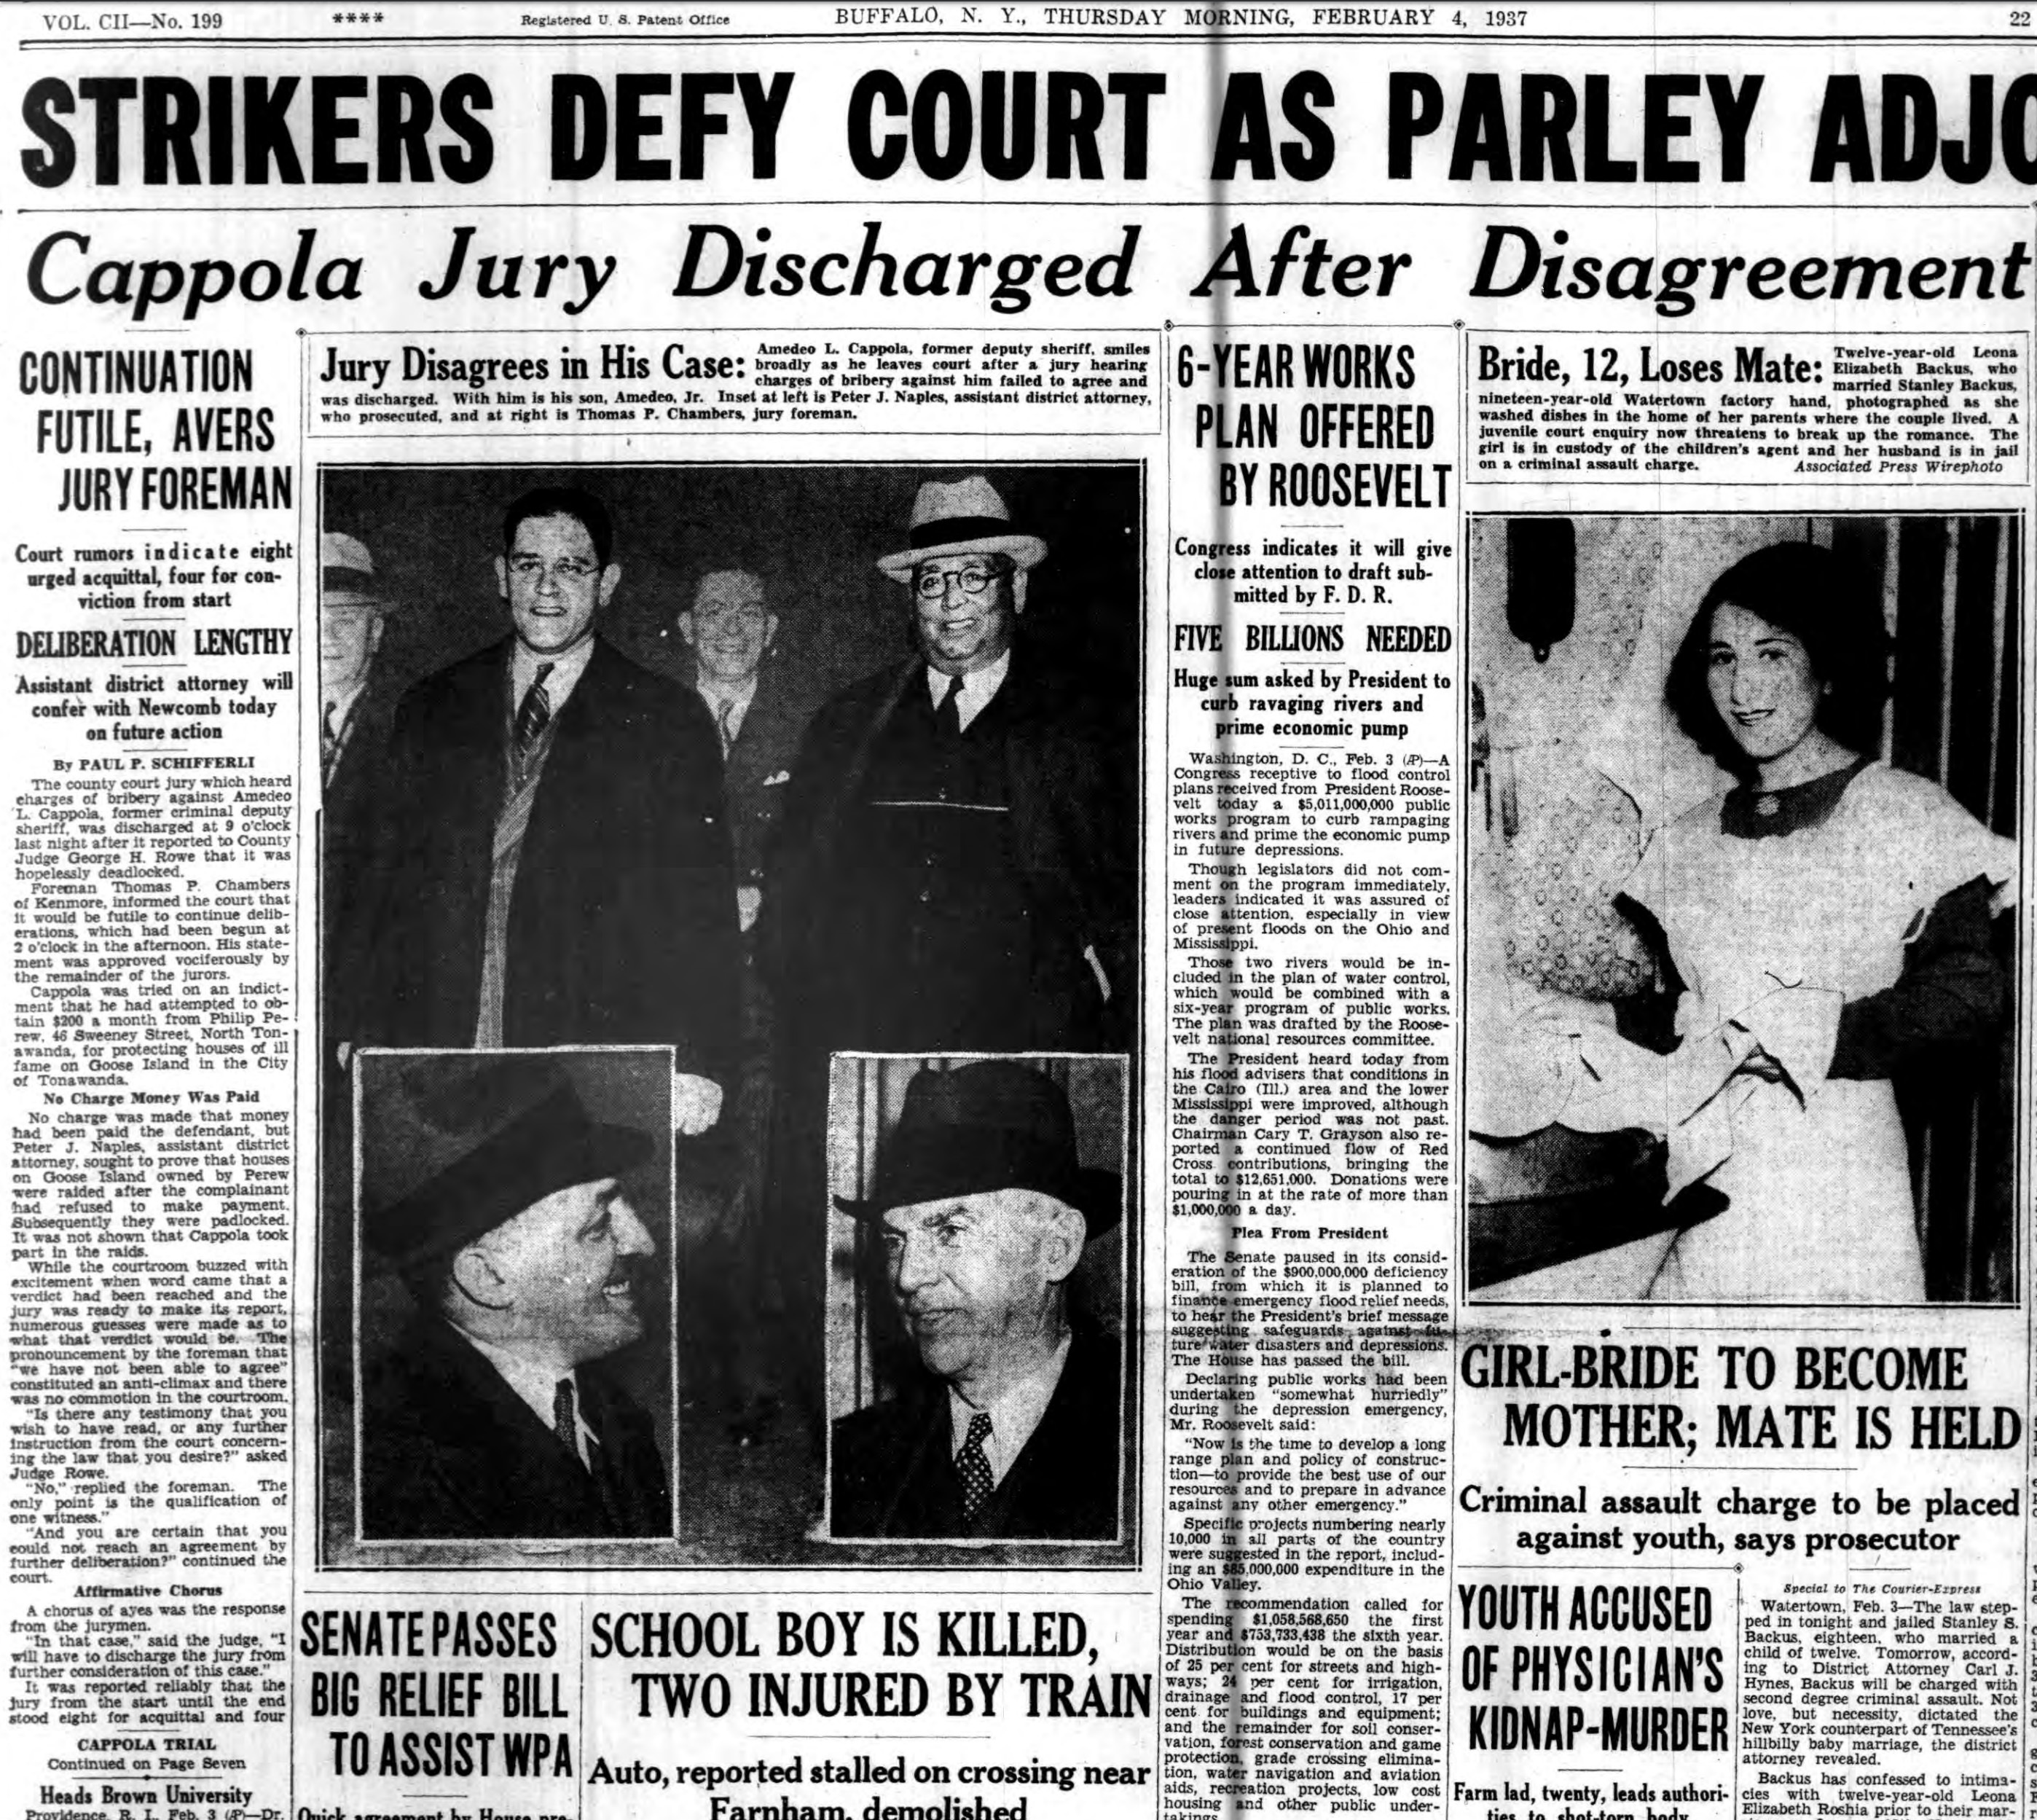 Cappola jury discharged, part 1, article (Buffalo Courier-Express, 1937-02-04).jpg